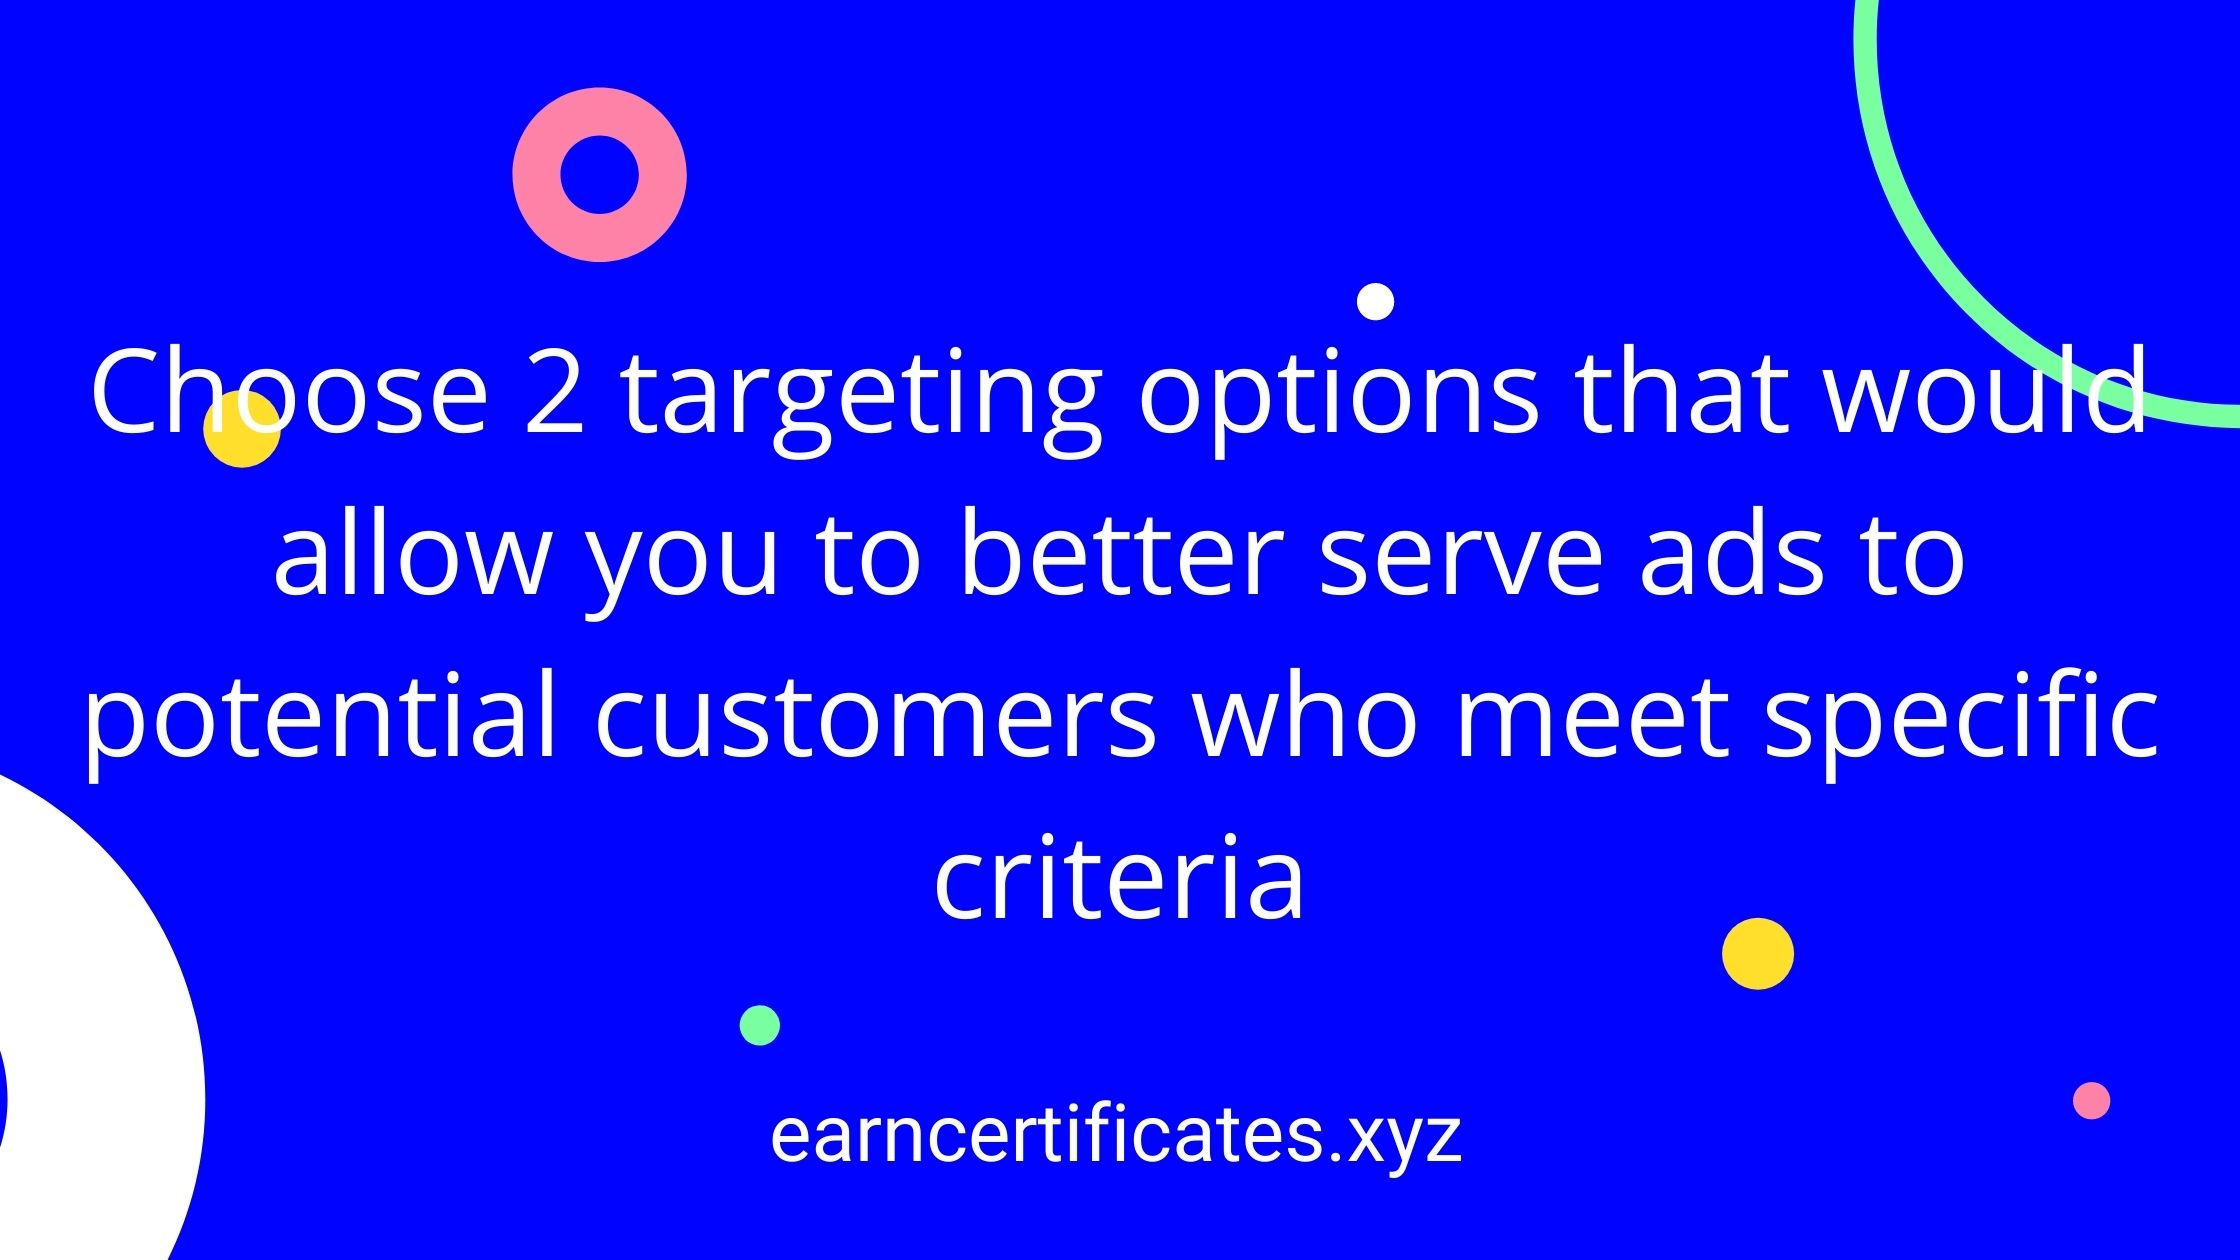 Choose 2 targeting options that would allow you to better serve ads to potential customers who meet specific criteria